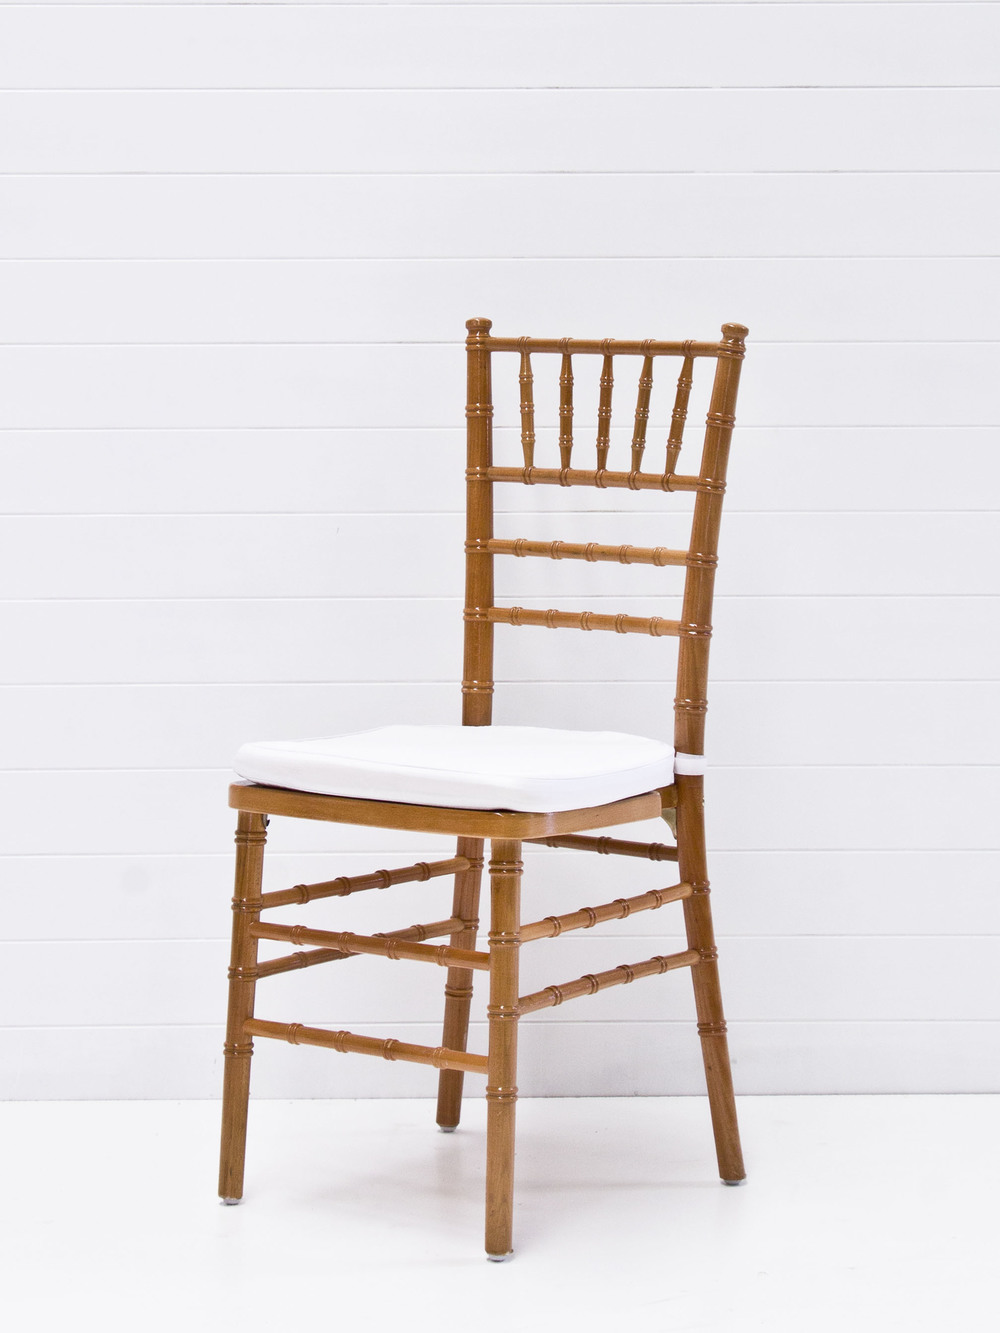 Bamboo tiffany chair.jpg